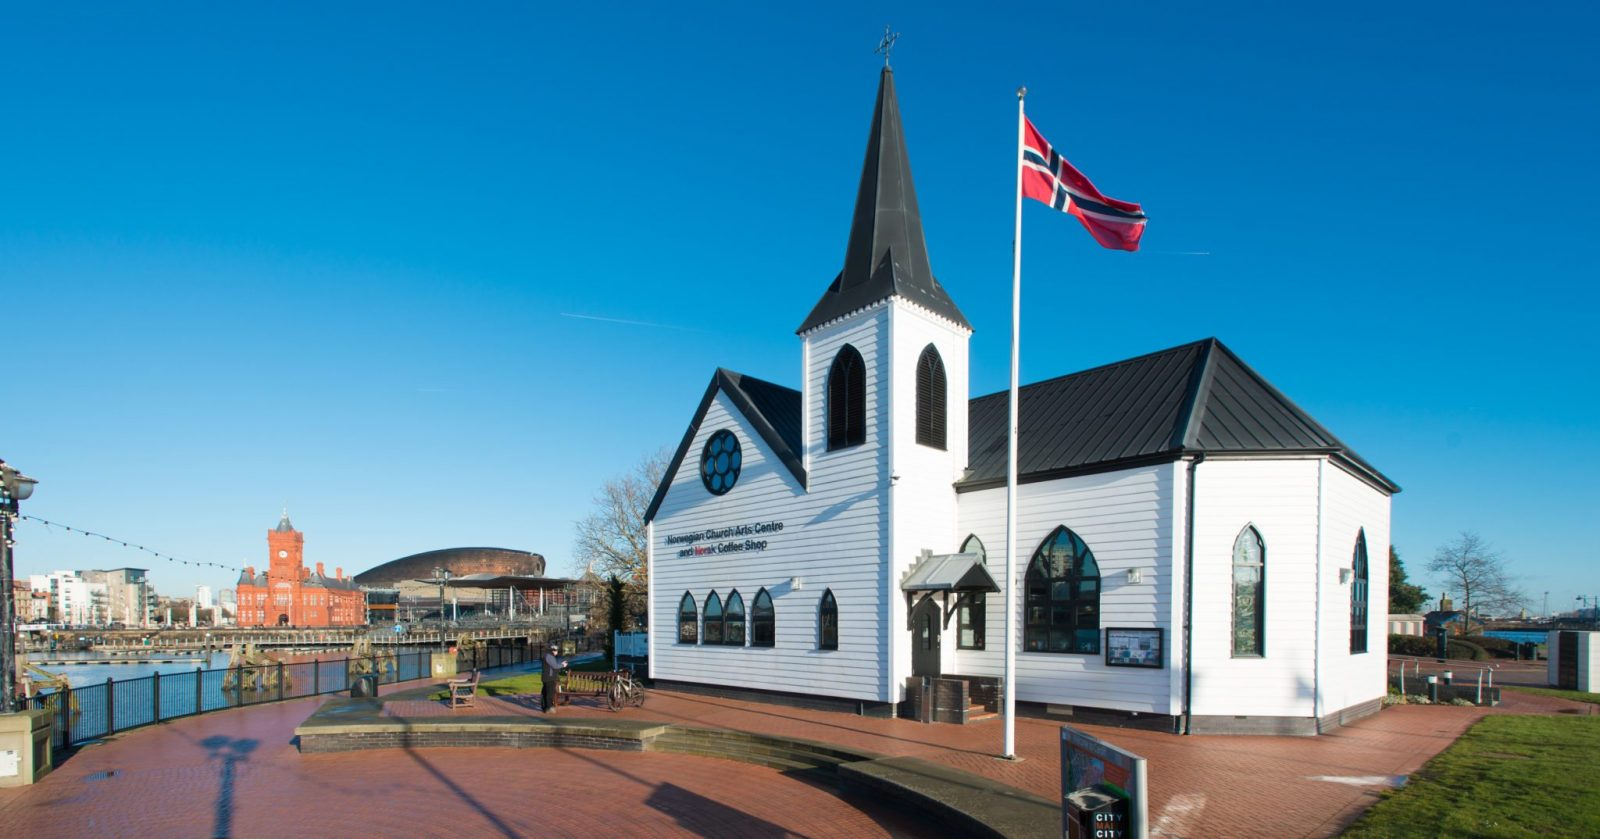 Wales Corporate Travel Meetings, Norwegian Church, Cardiff, Wales